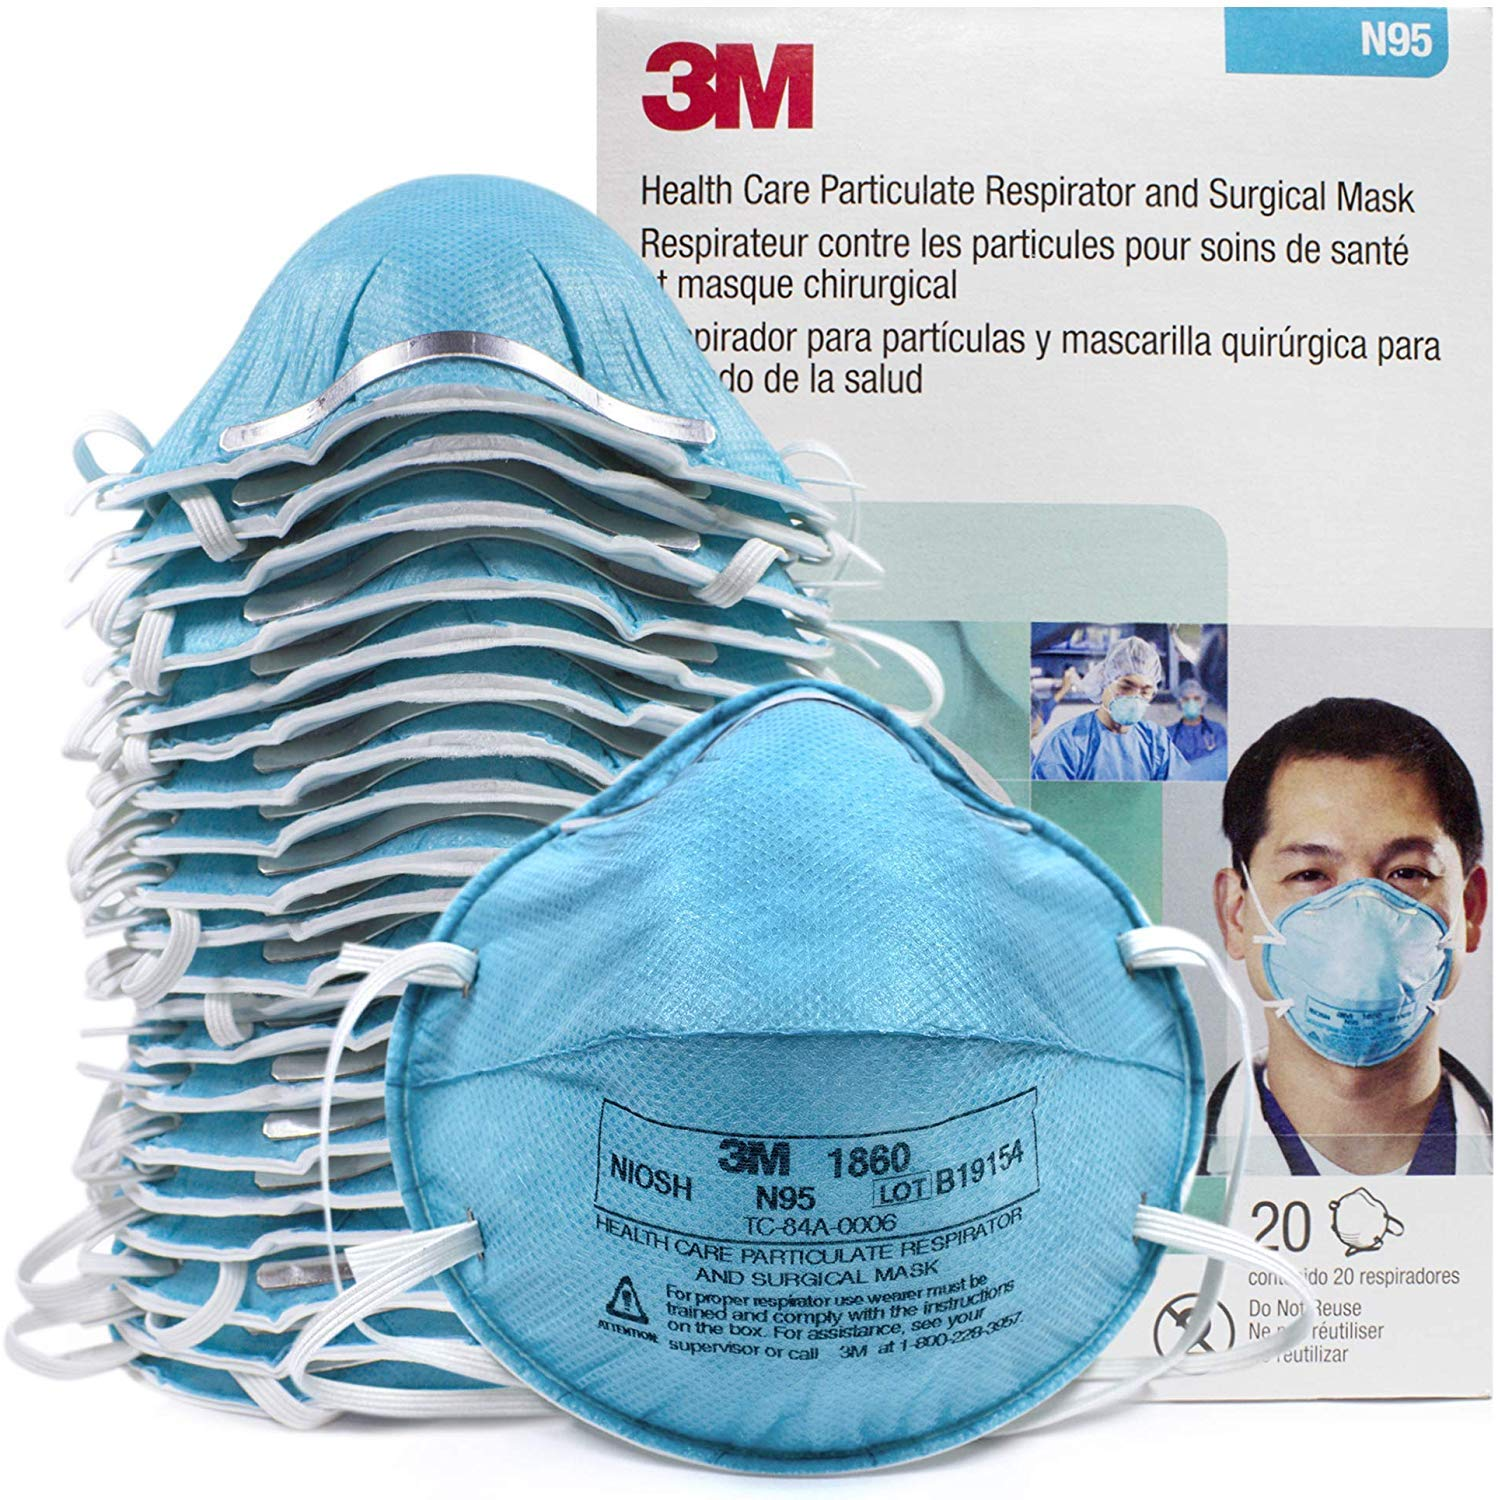 3m health care particulate respirator and surgical mask 1860s small